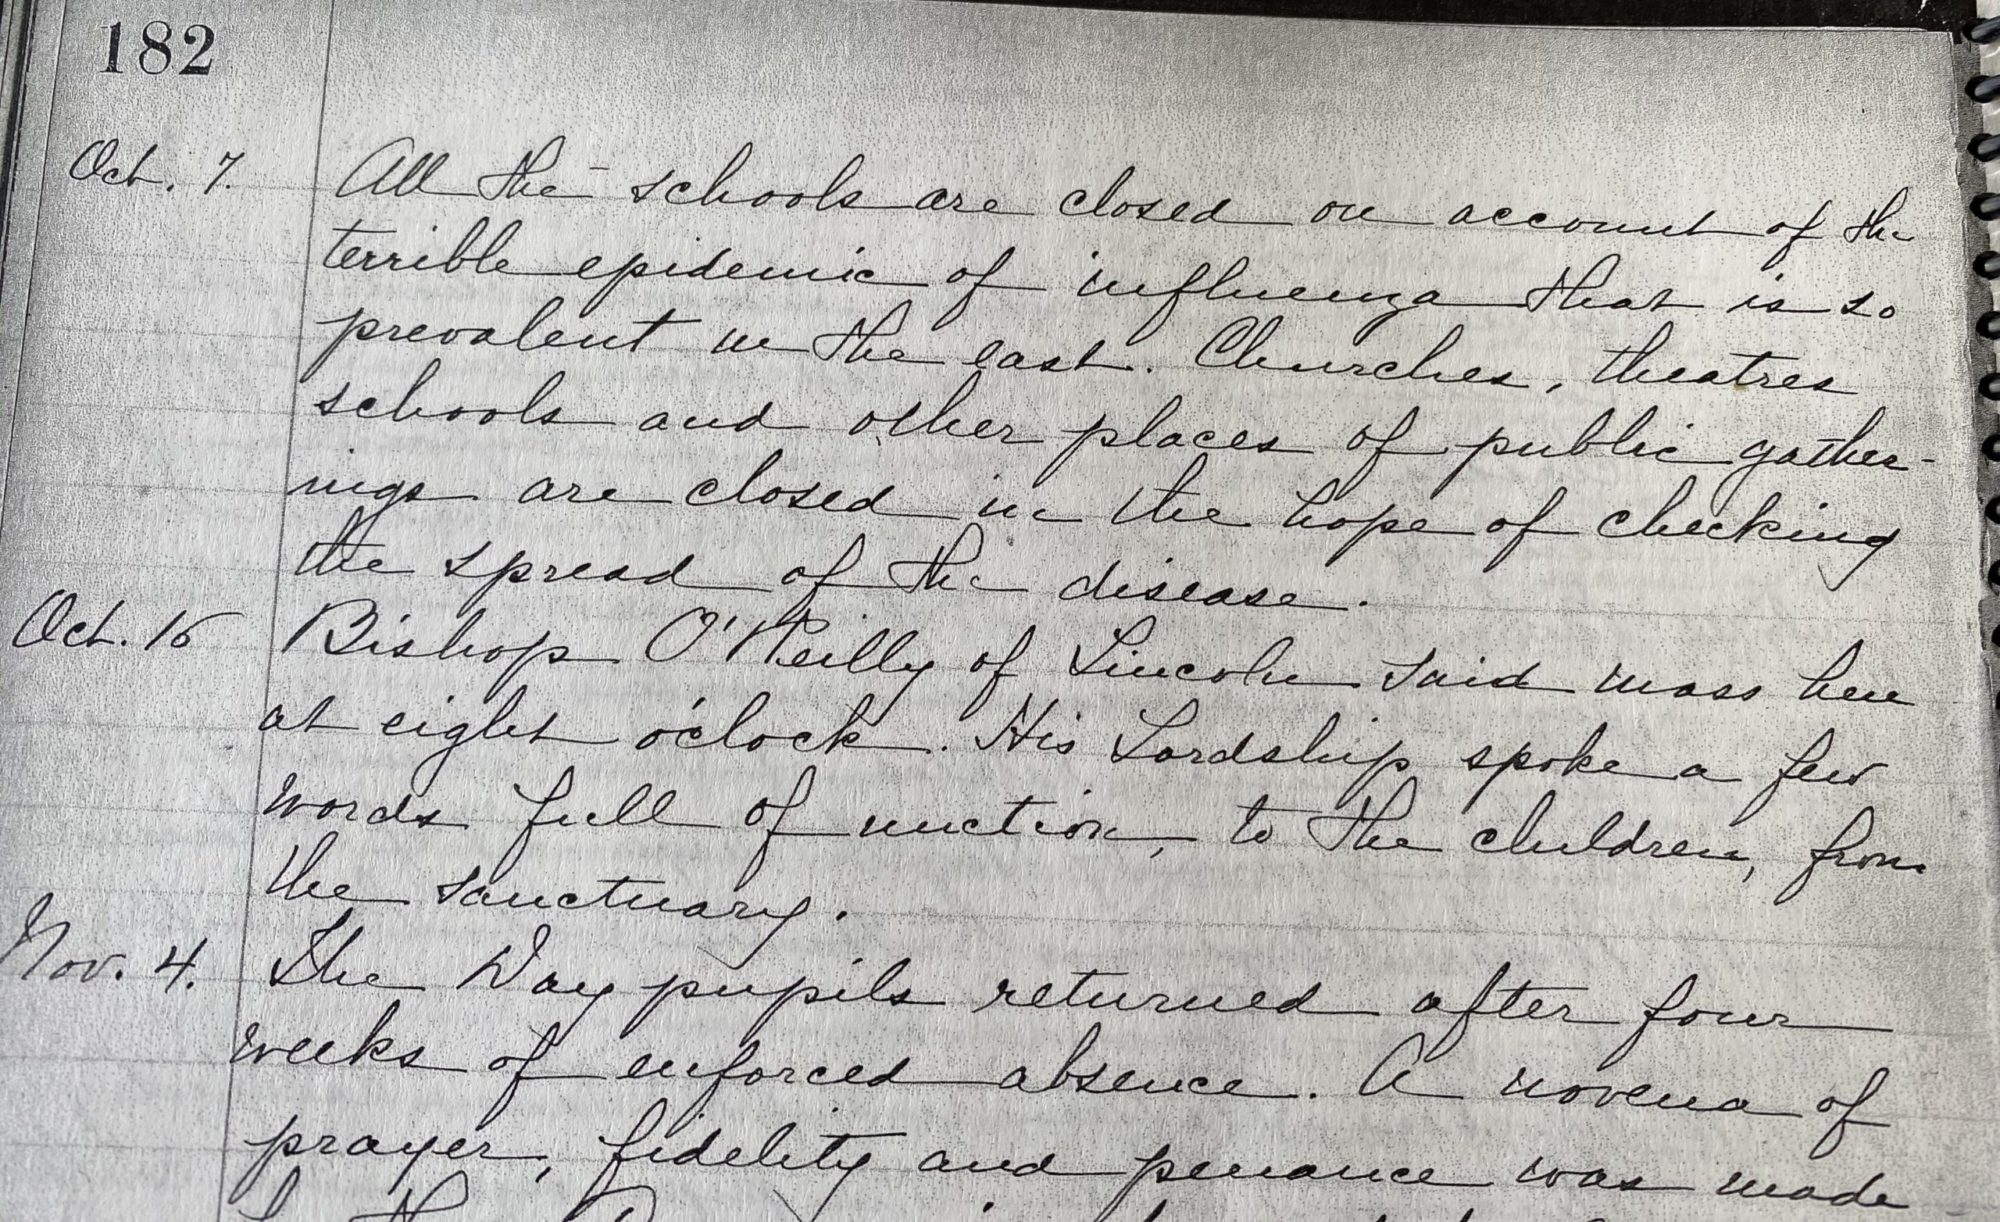 October 7, 1918 House Journal entry